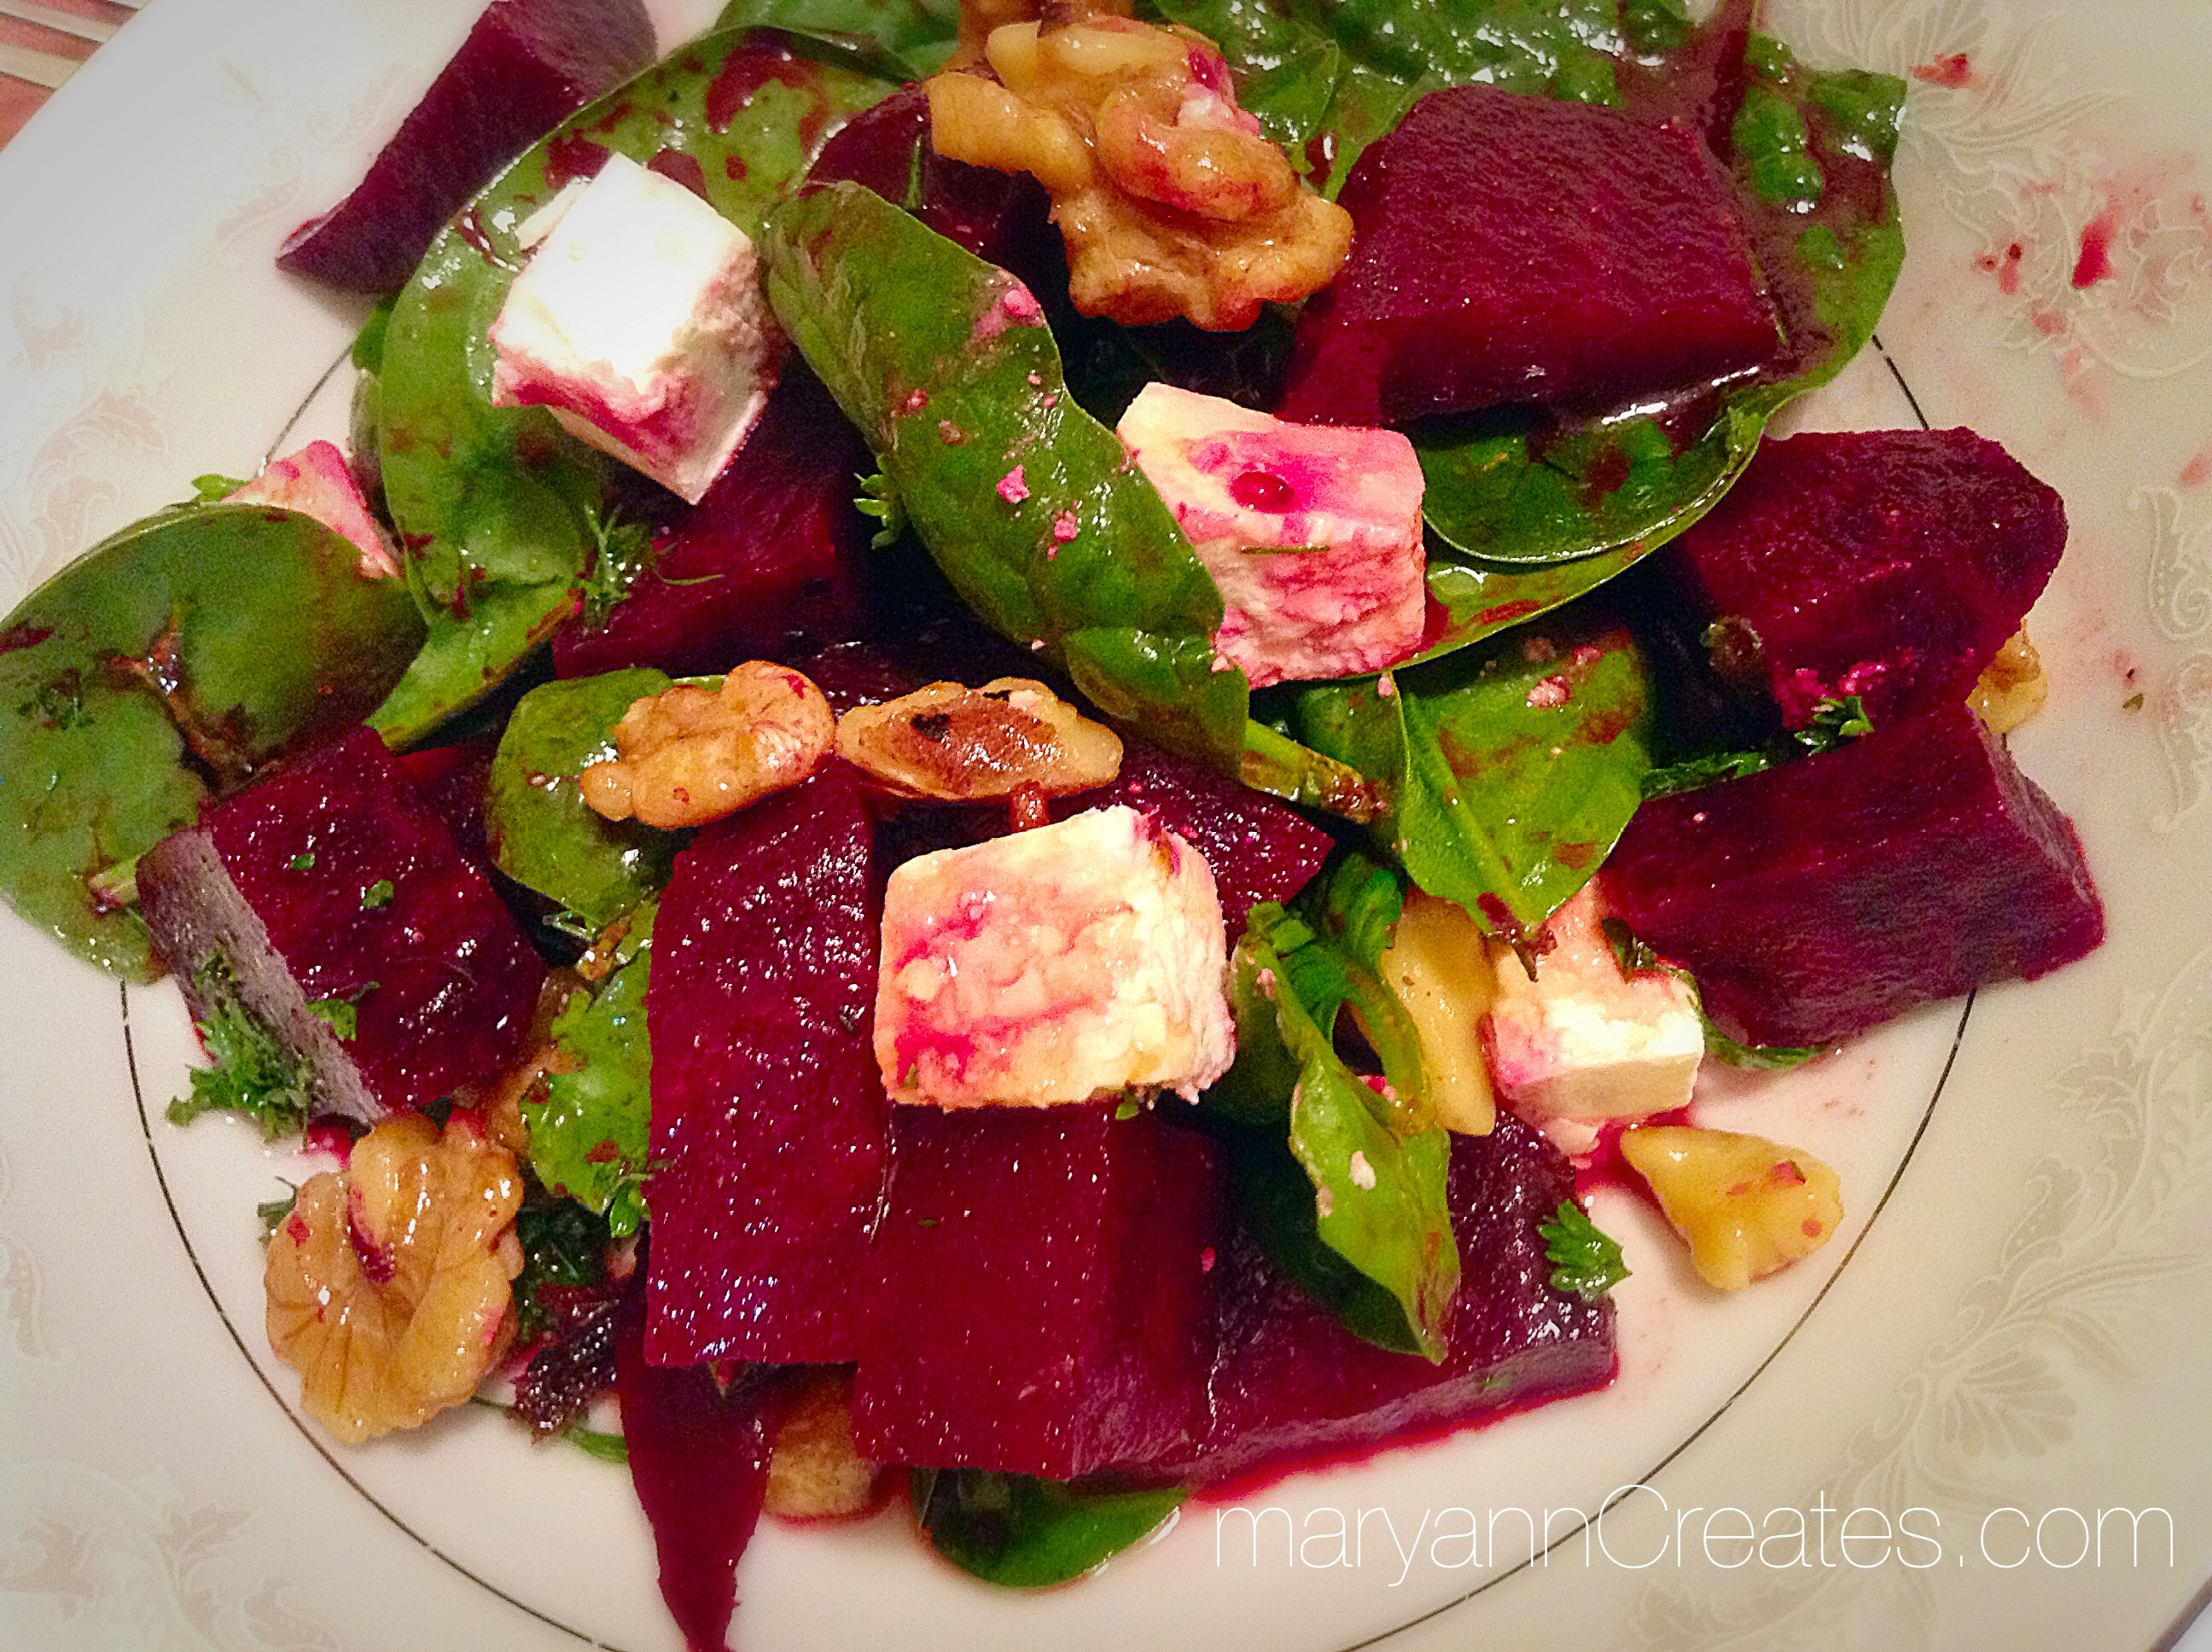 Beetroots, feta and spinach salad with pomegranate dressing